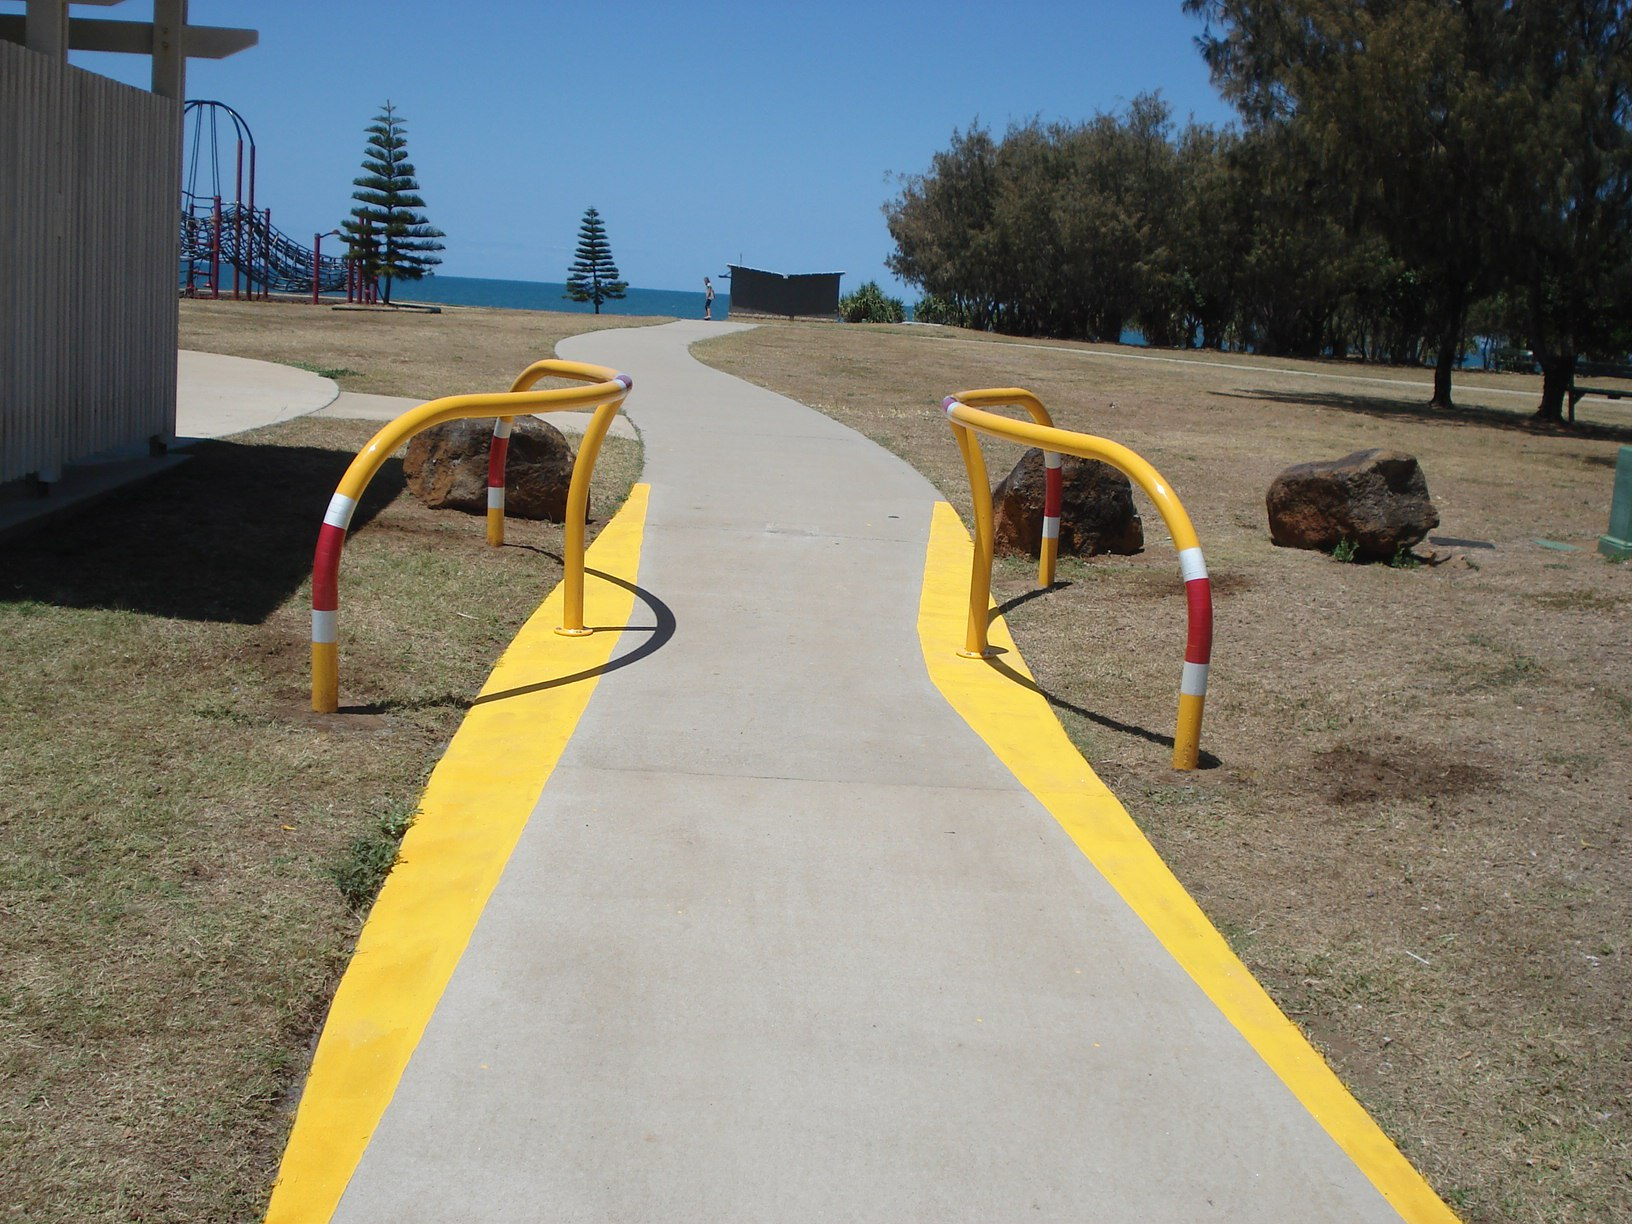 Footpath-with-Banana-Bars.JPG